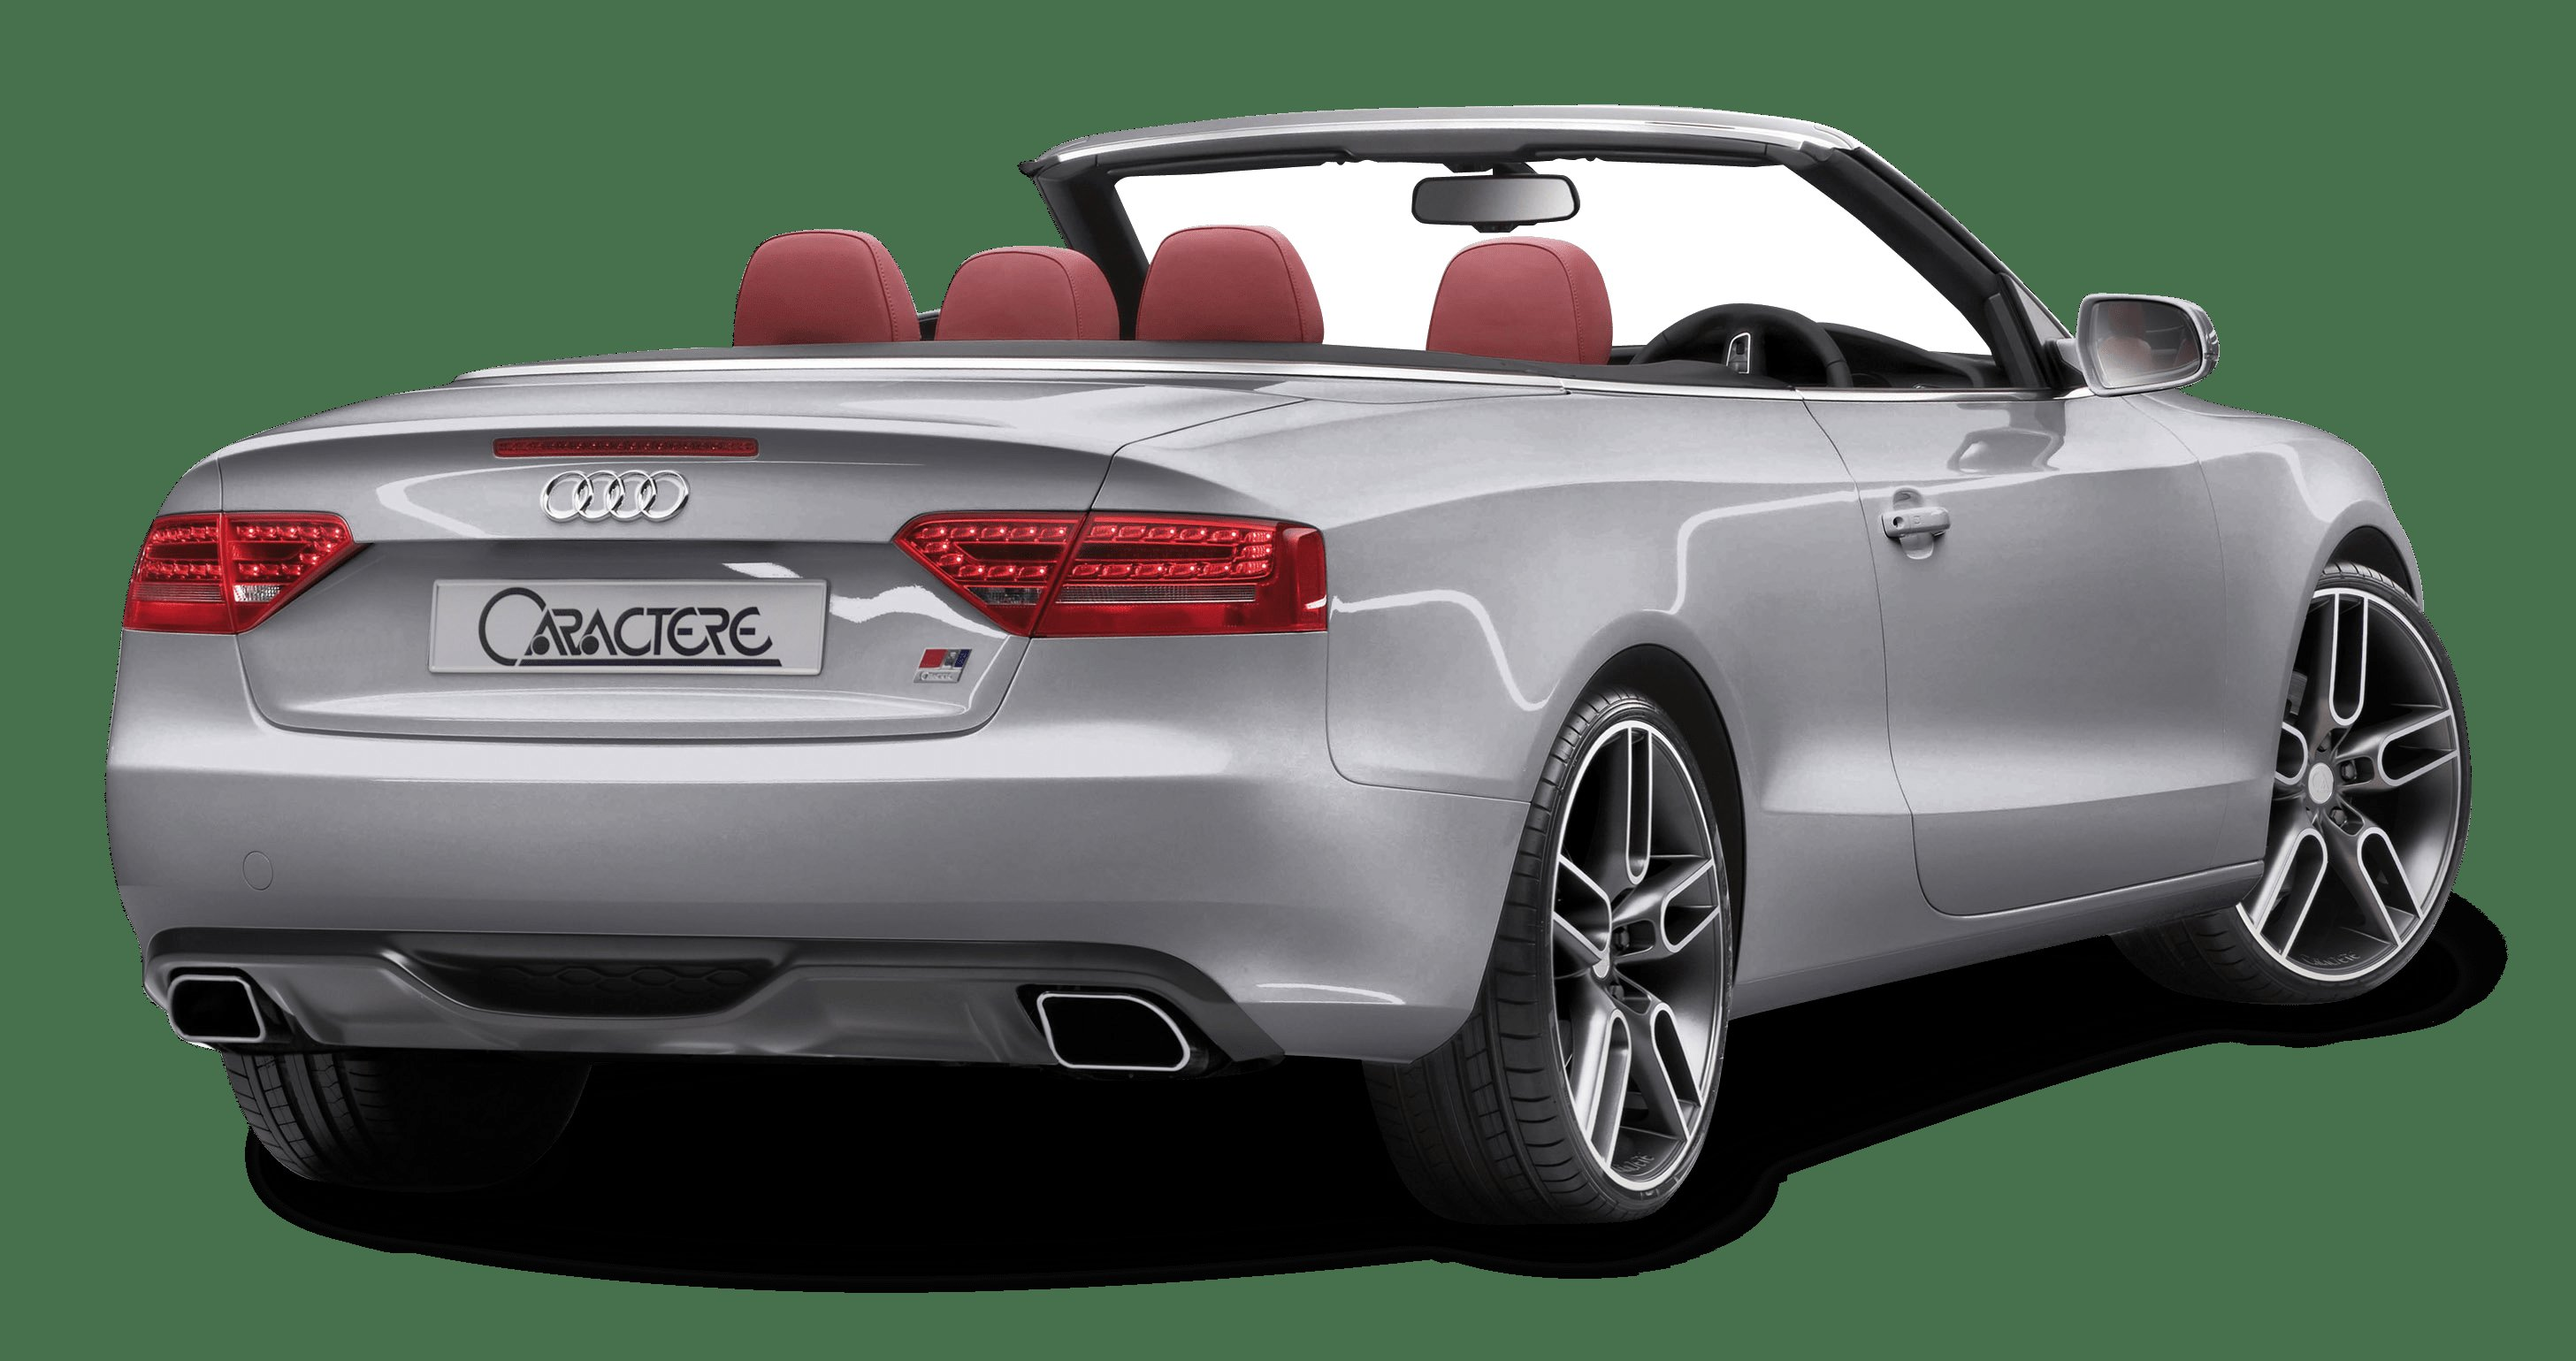 Latest Audi A5 Cabrio Grey Back View Car Png Image Pngpix Free Download